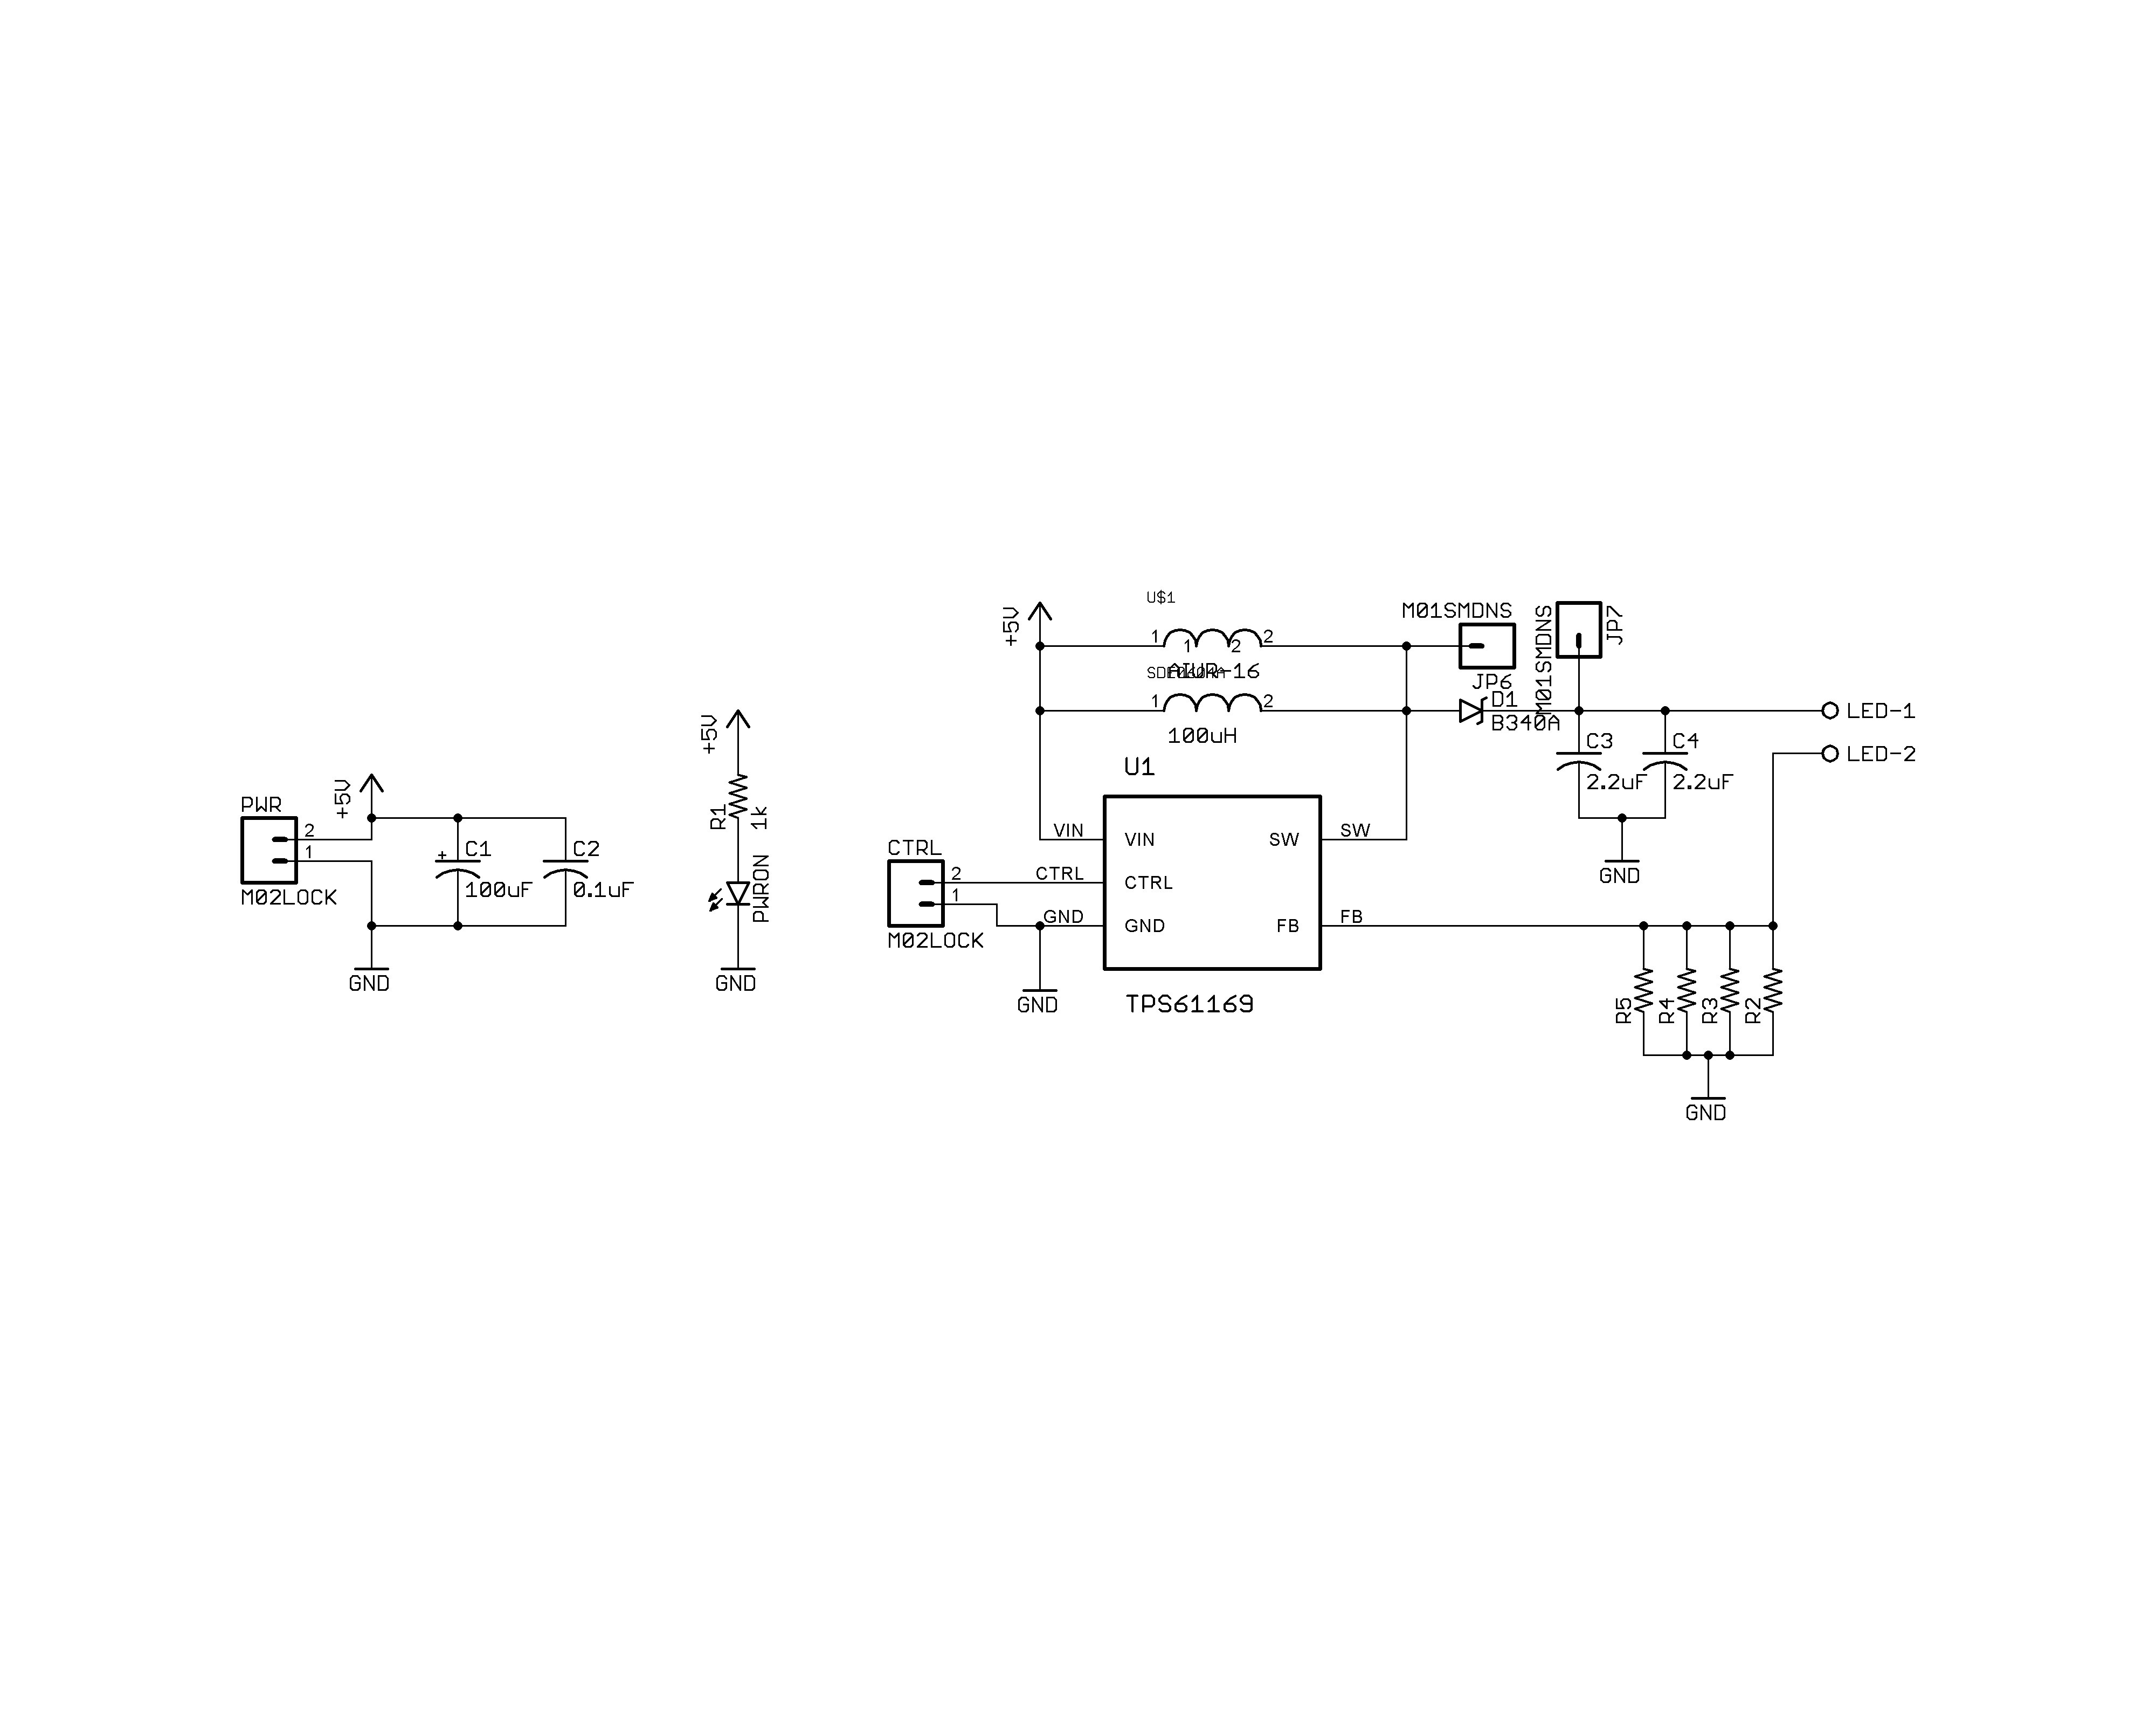 TPS61169 LED Driver Not Functioning